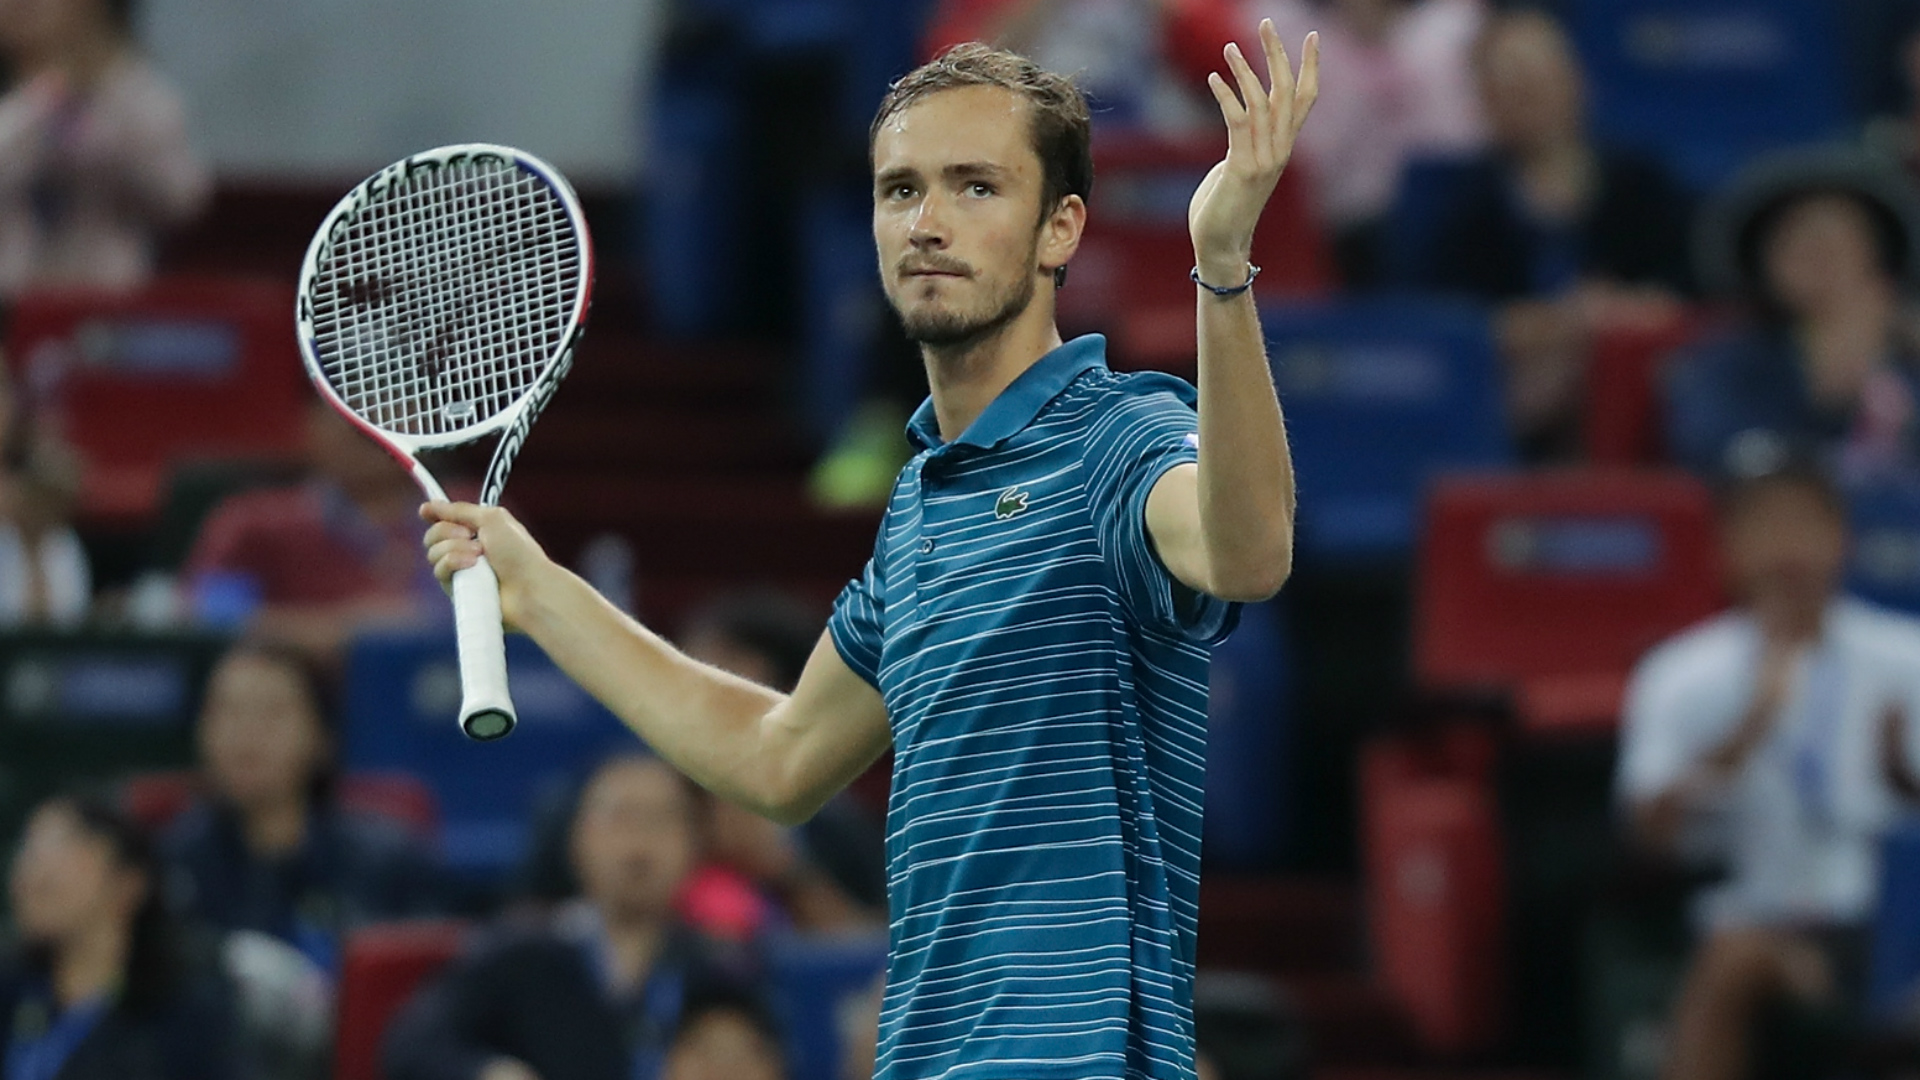 Medvedev to face Zverev in Shanghai after reaching sixth straight final